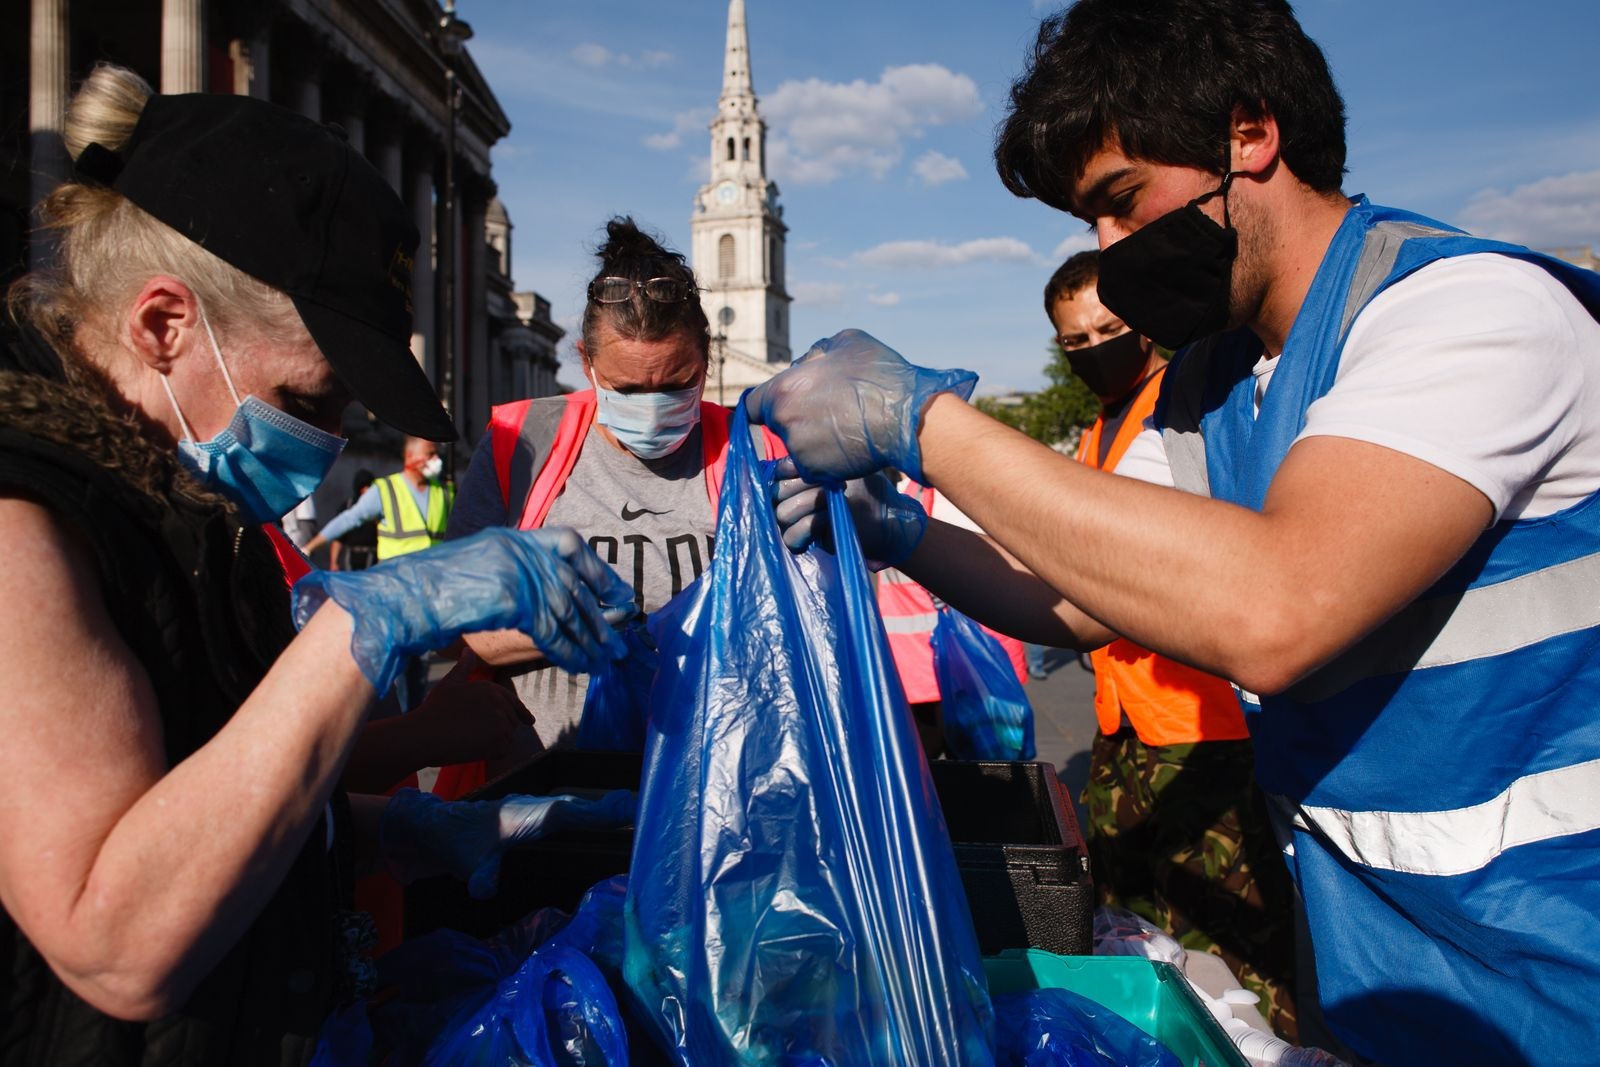 Volunteers Hand Out Food Parcels In Trafalgar Square In London